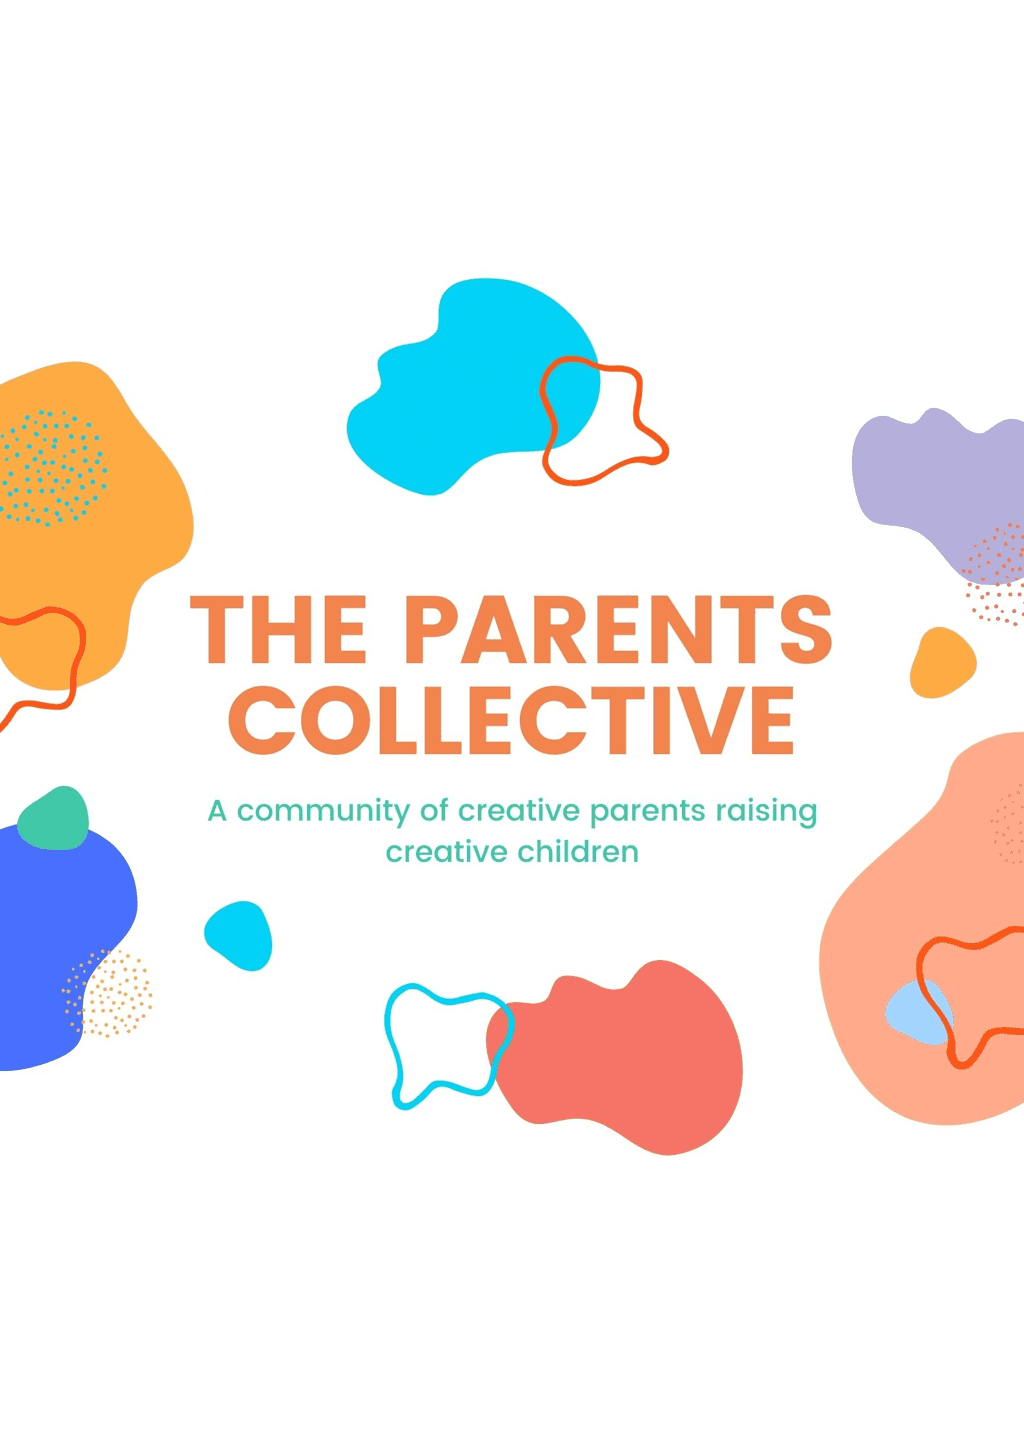 Welcome to the Parents Collective!